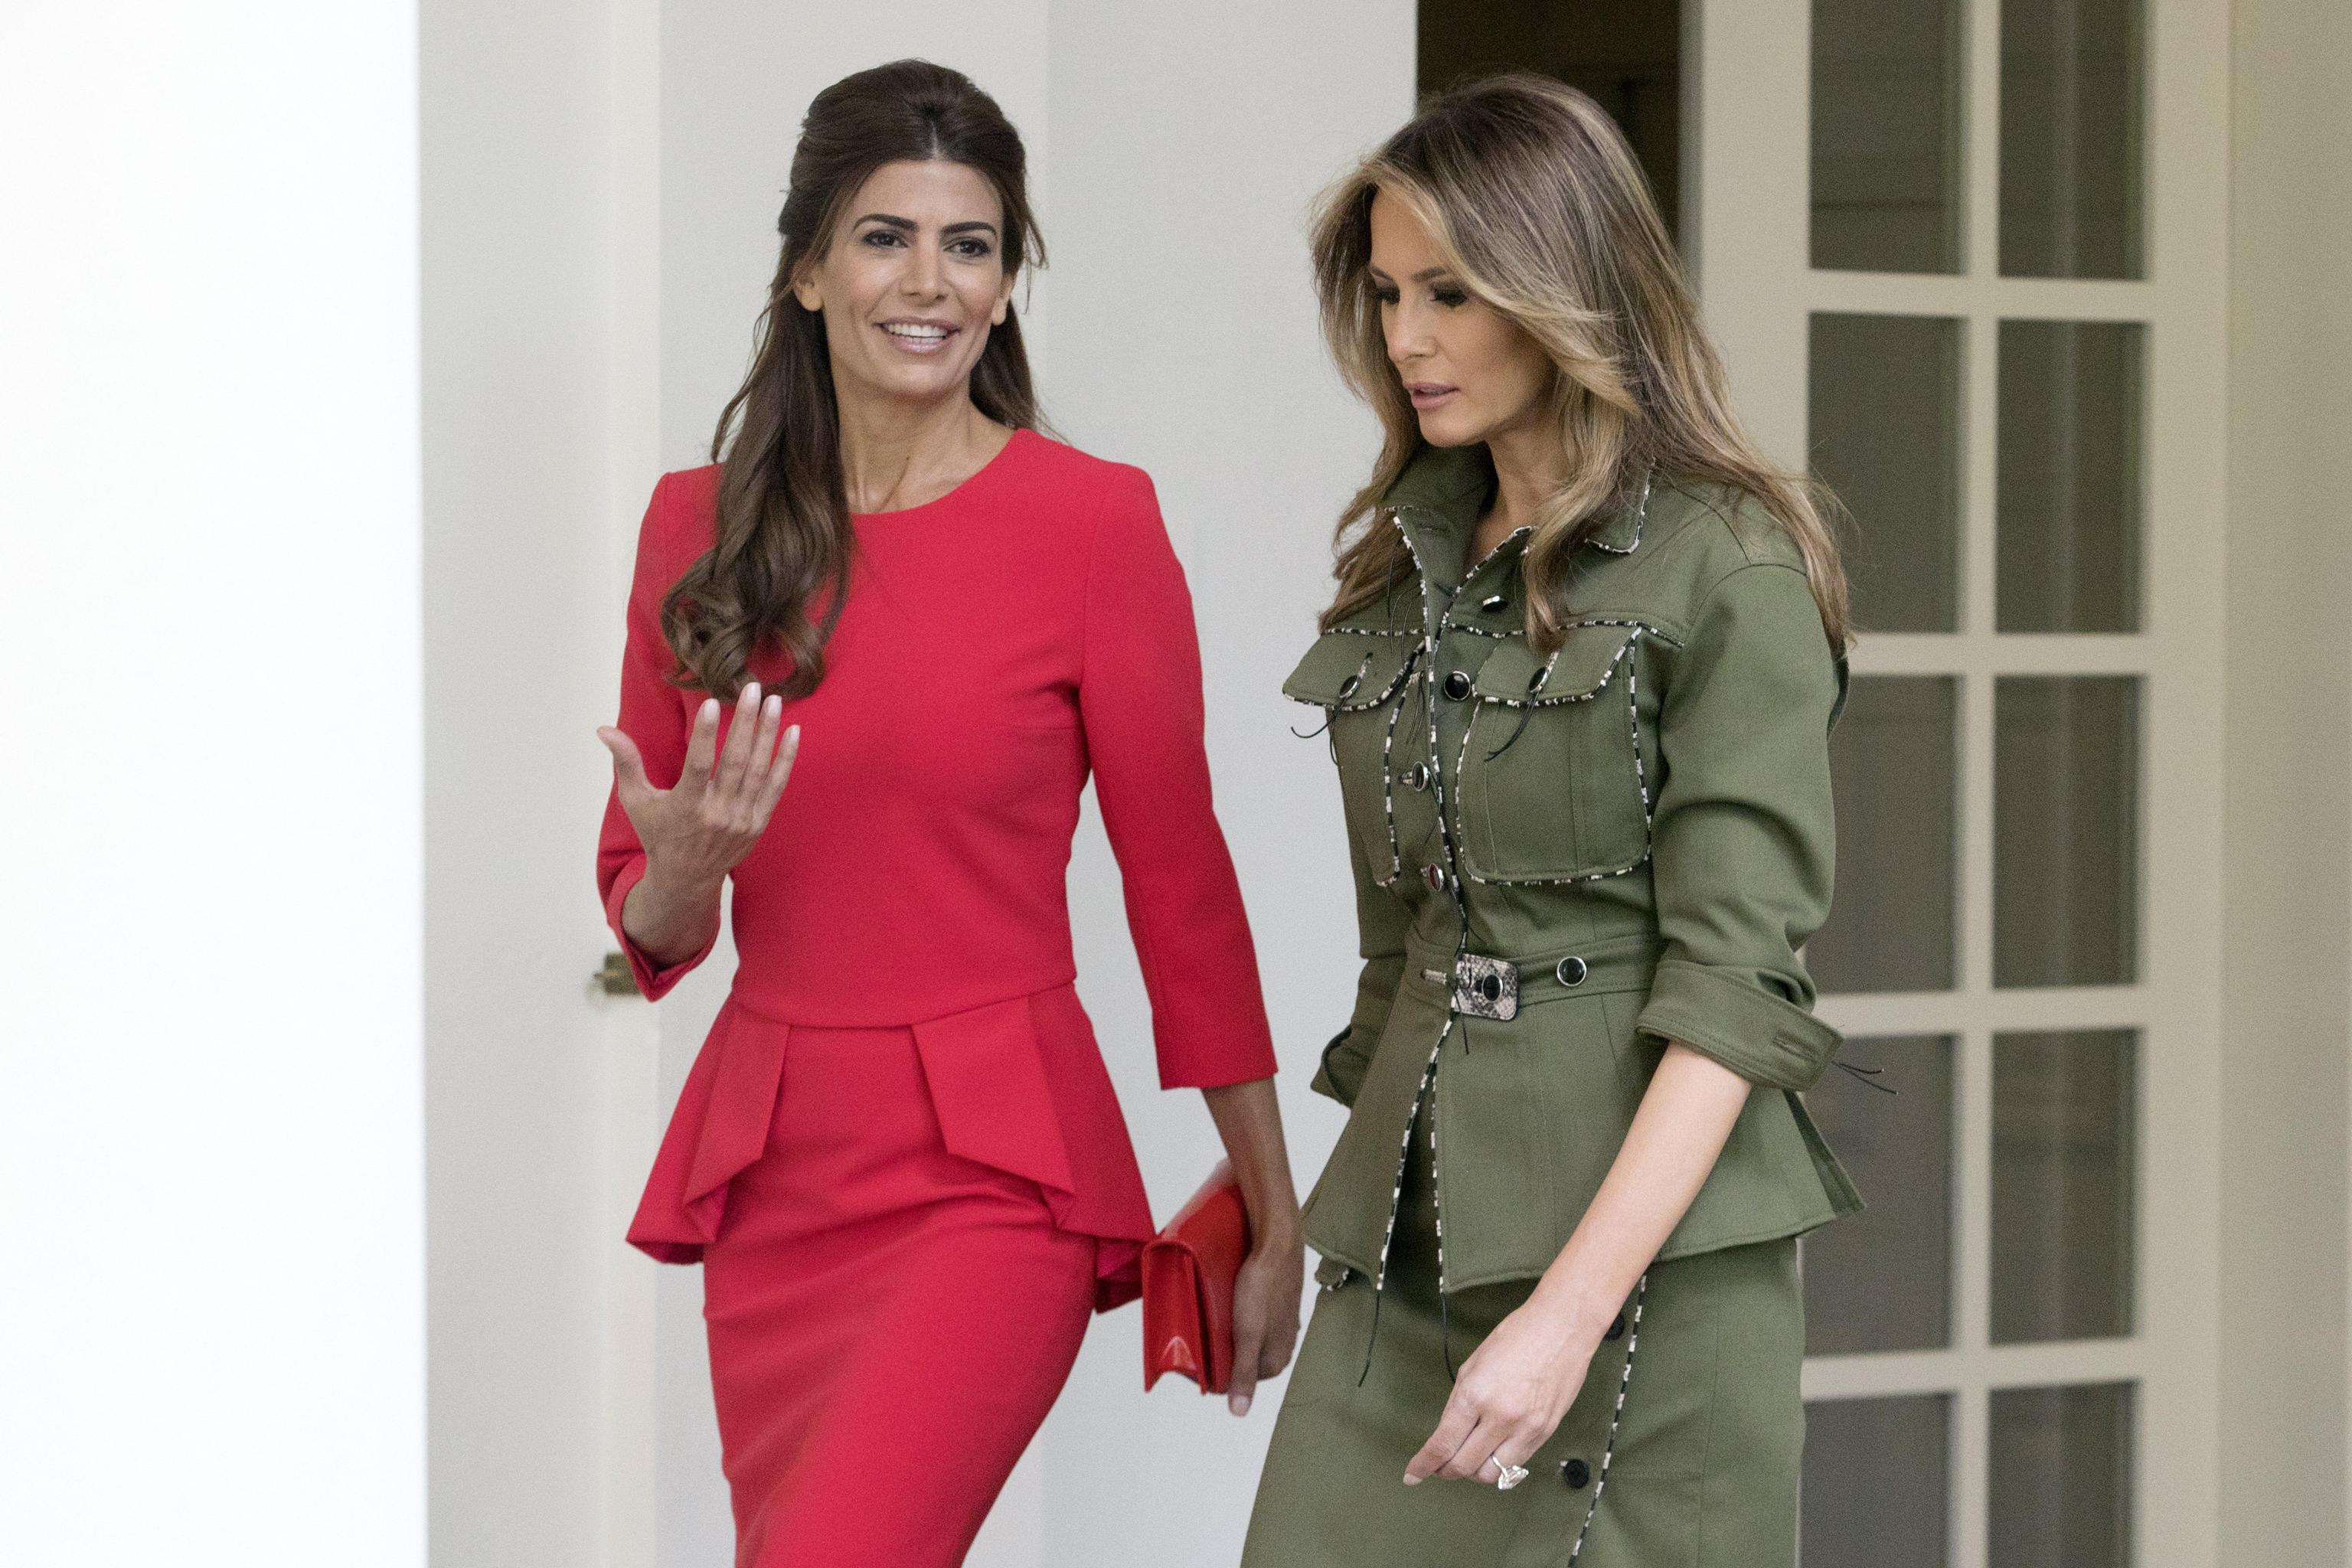 US First Lady Melania Trump and Argentine First Lady Juliana Awada